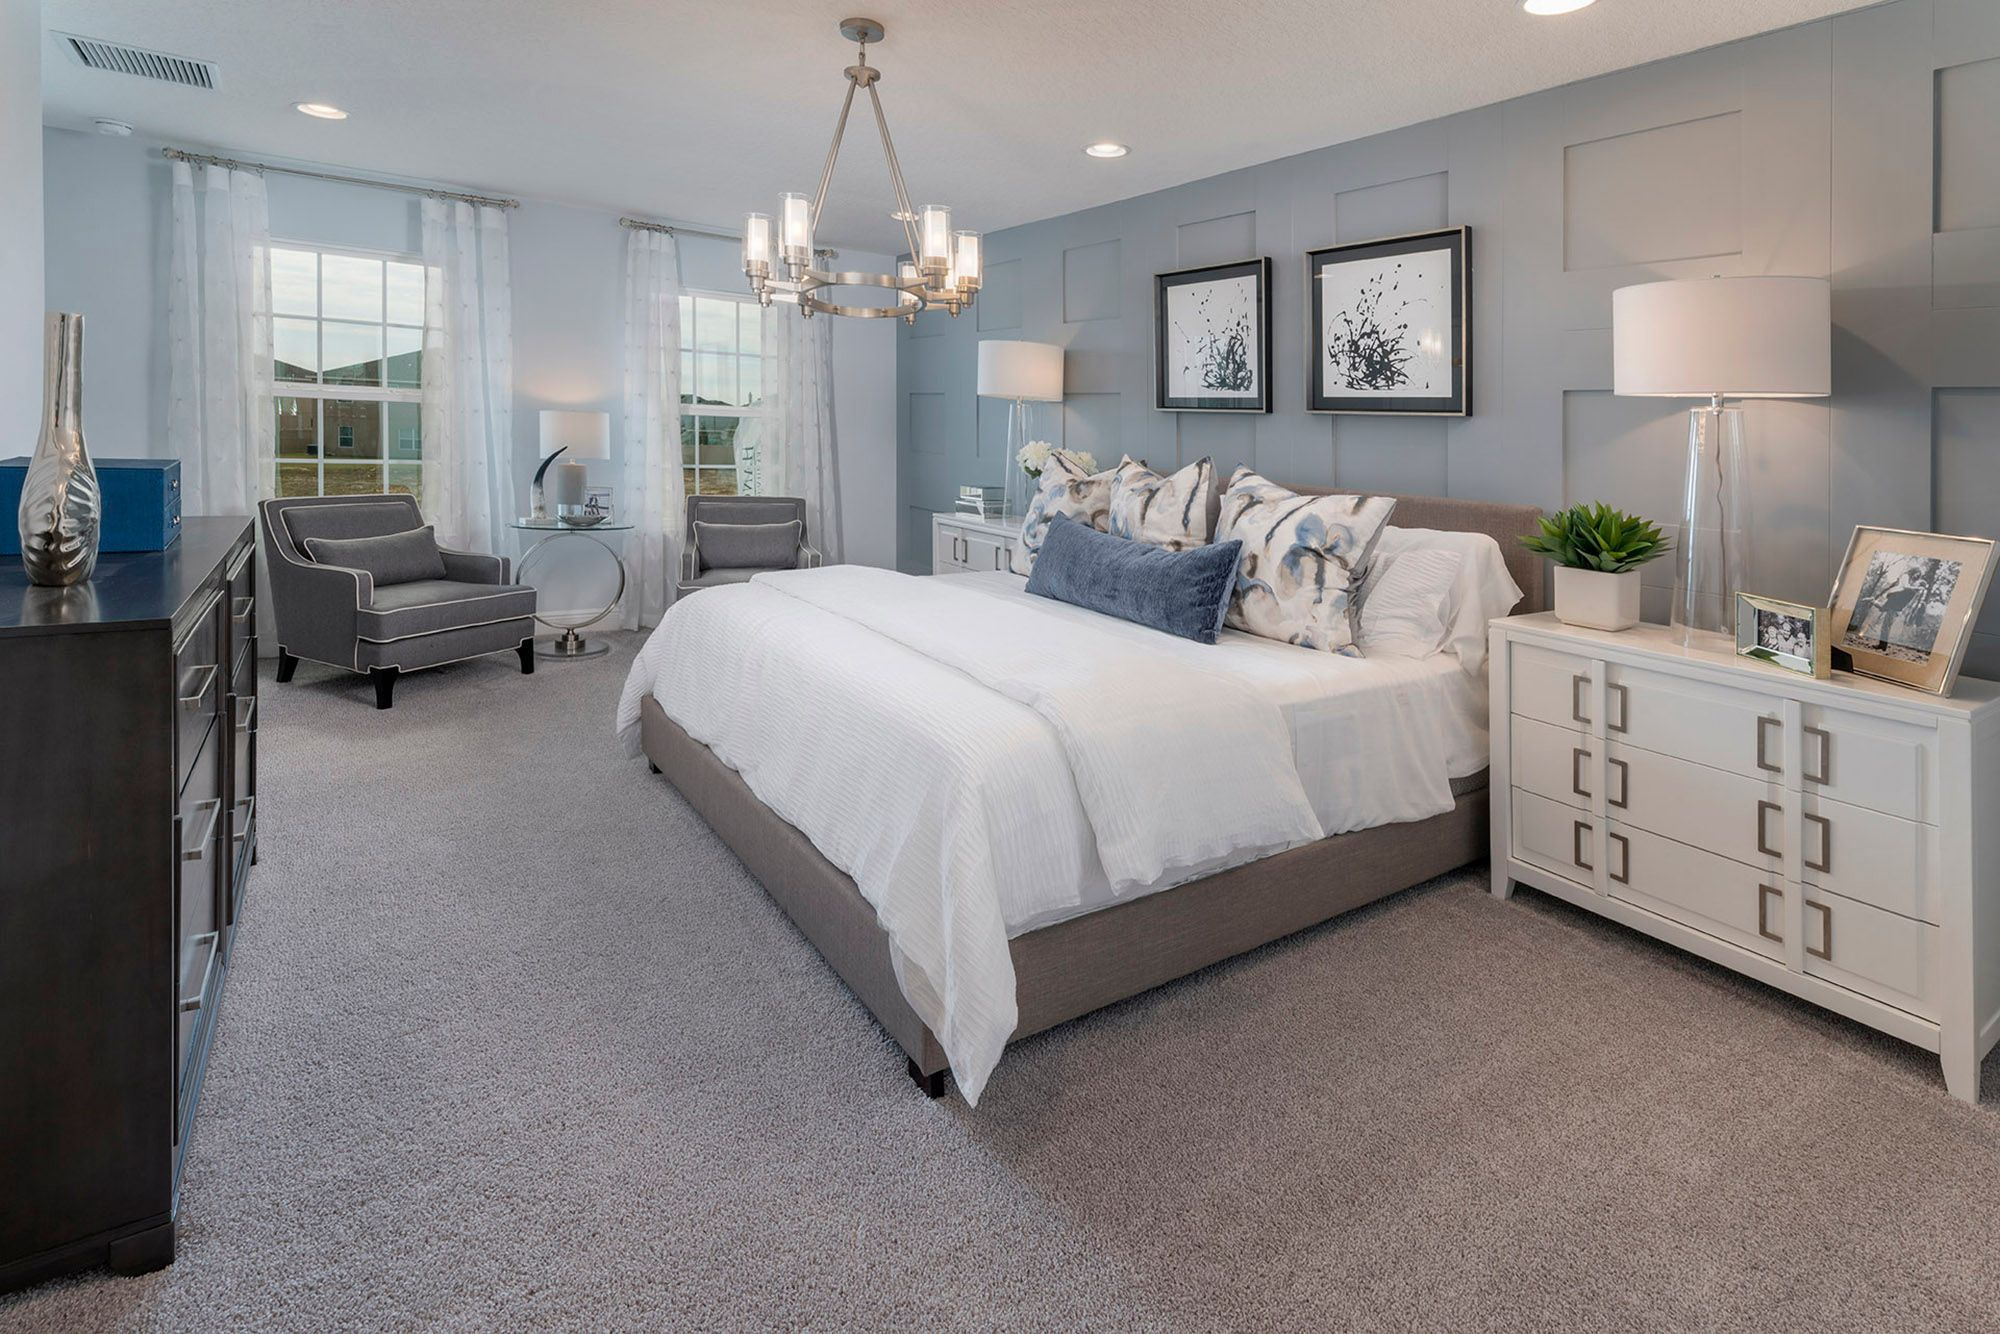 Bedroom featured in the Wilshire By Hanover Family Builders in Orlando, FL